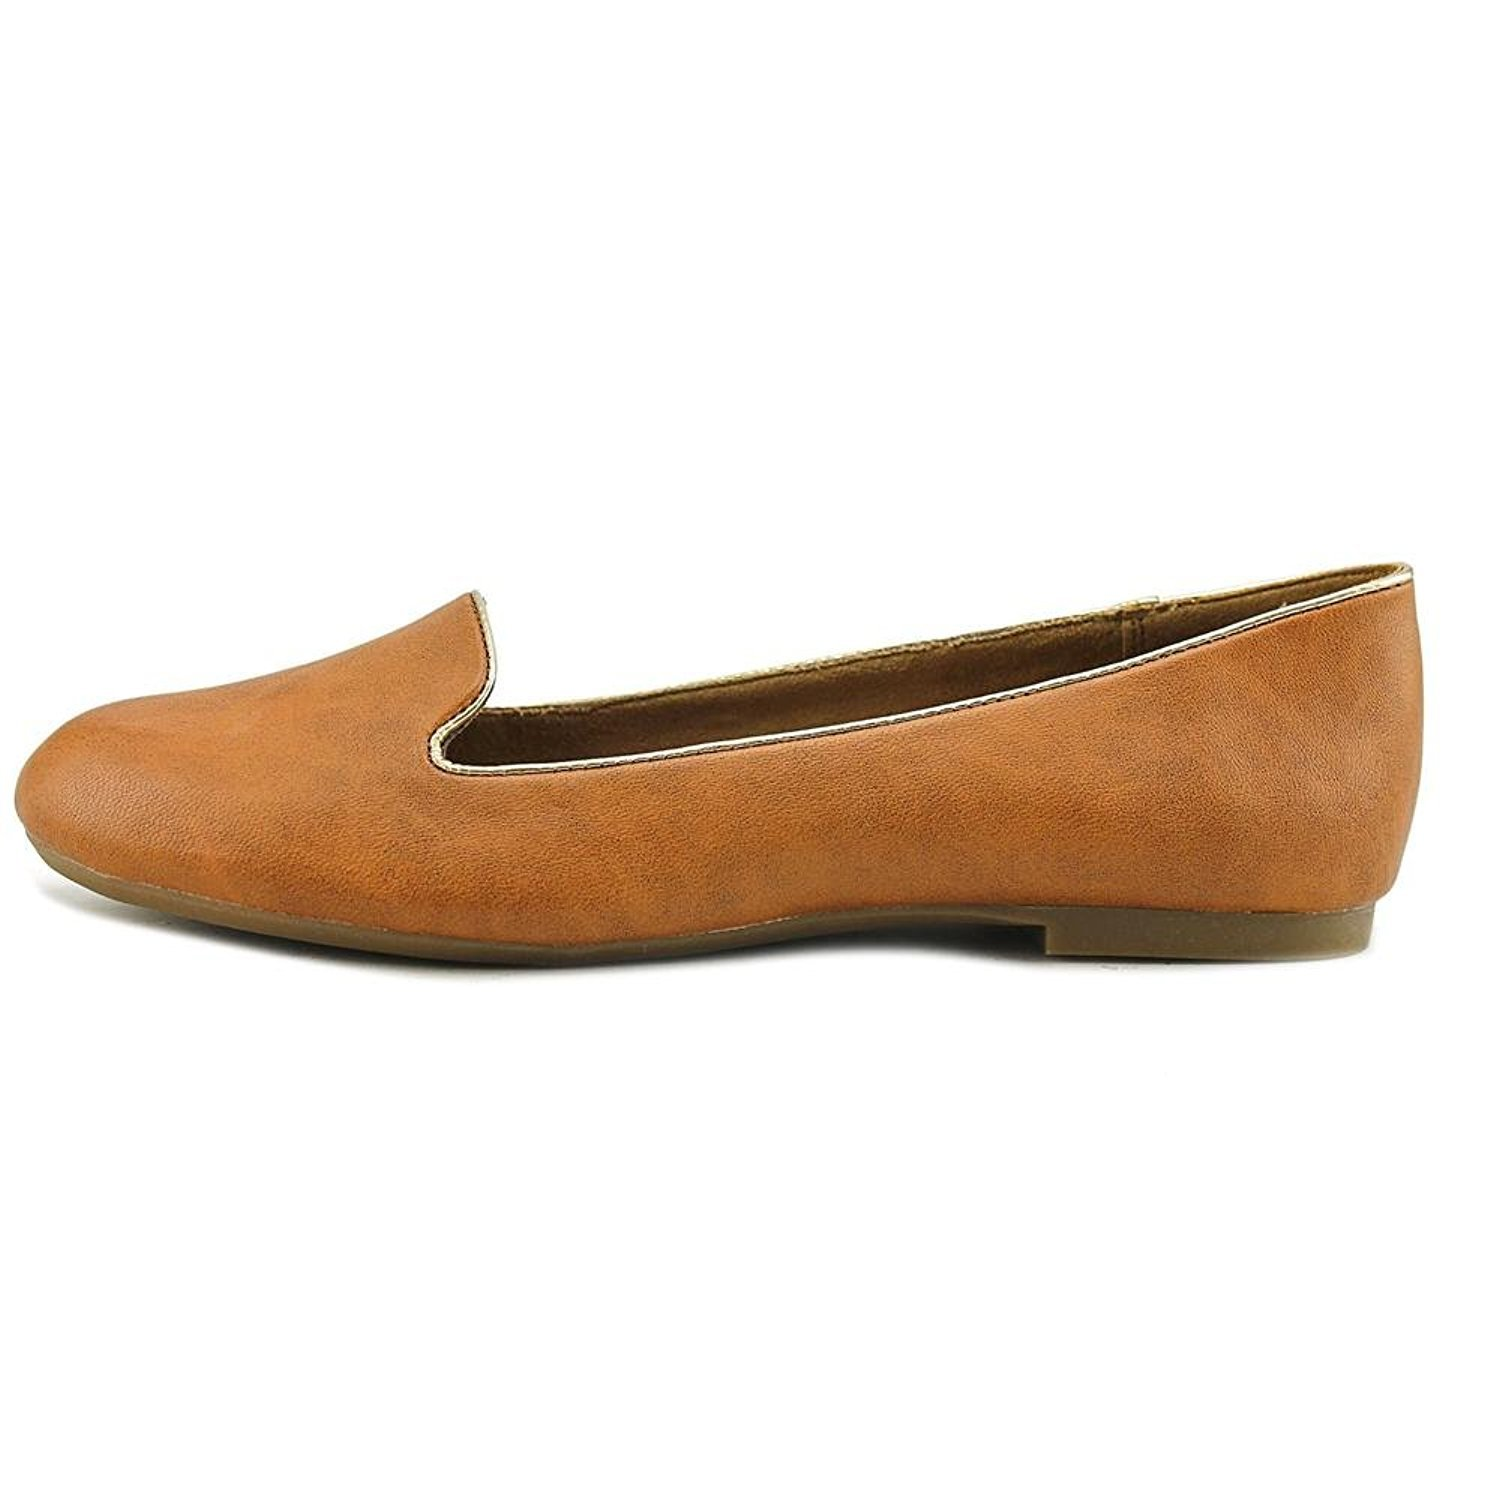 Style & Co. Womens Alysonn2 Closed Toe Slide Flats, Coffee, Size 7.0 by Style & Co.